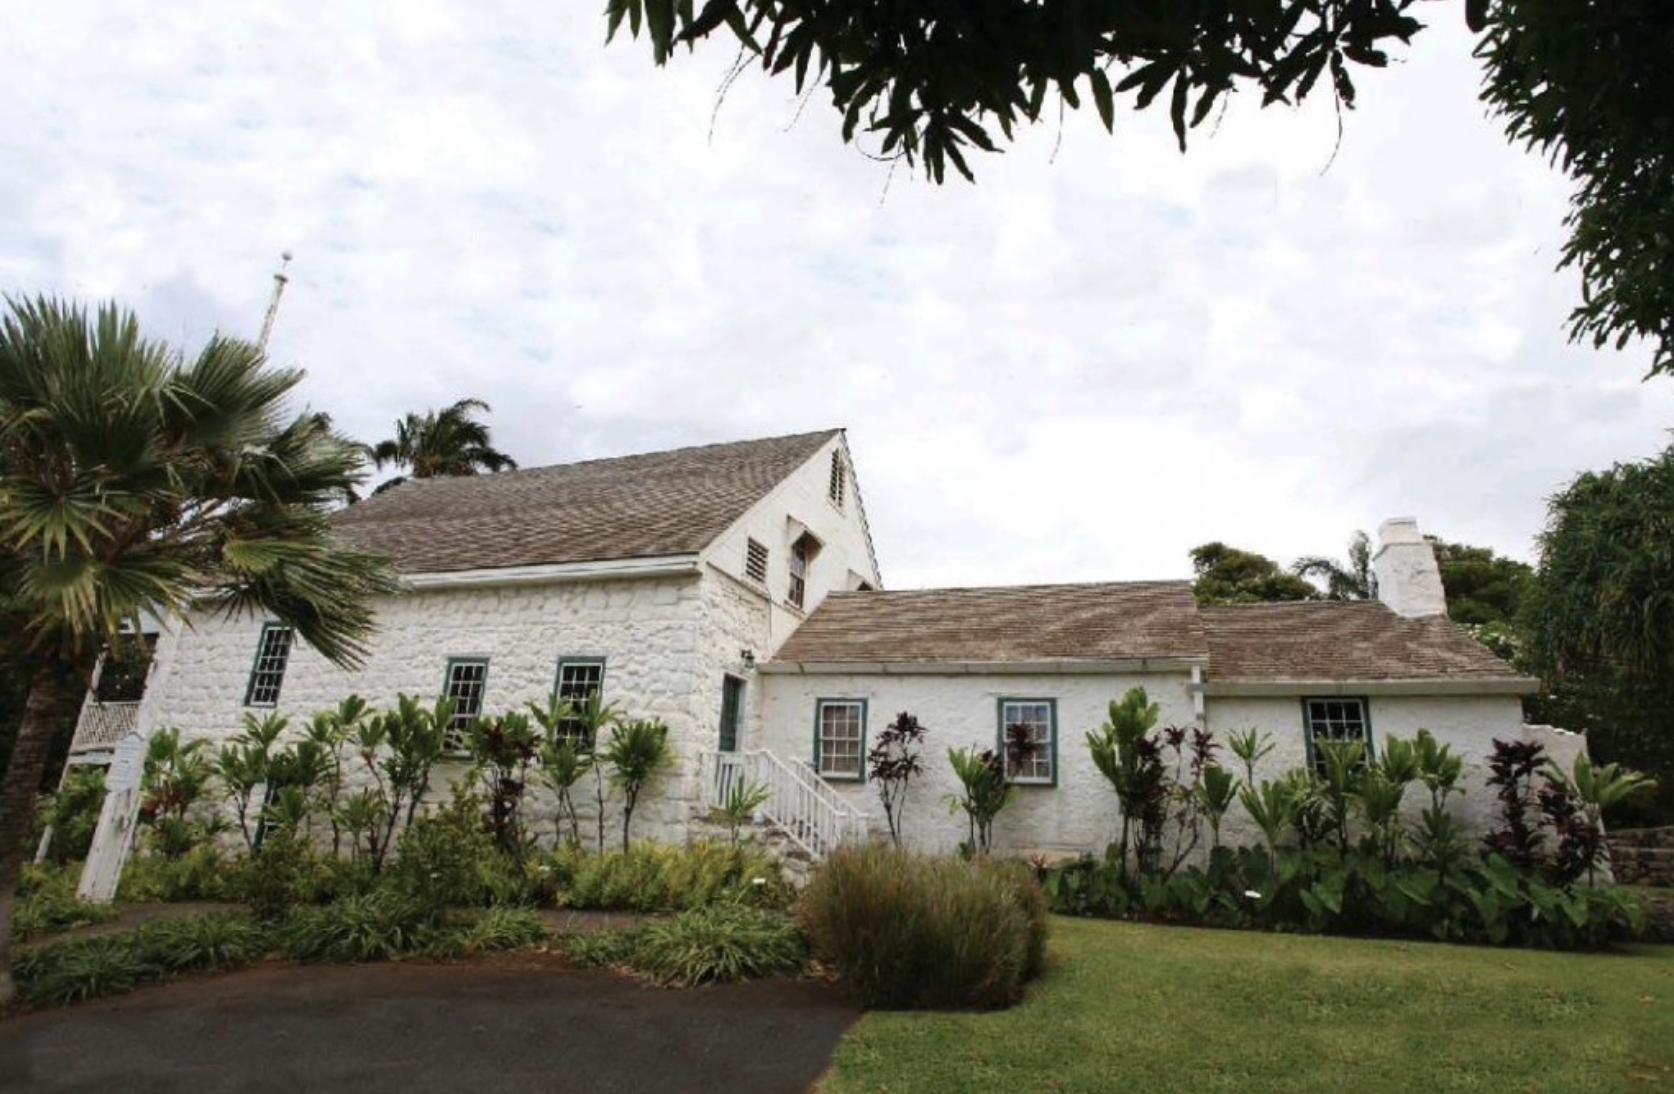 Maui Historical Society Applies for Permits to Repair Hale Hō'ike'ike at Bailey House